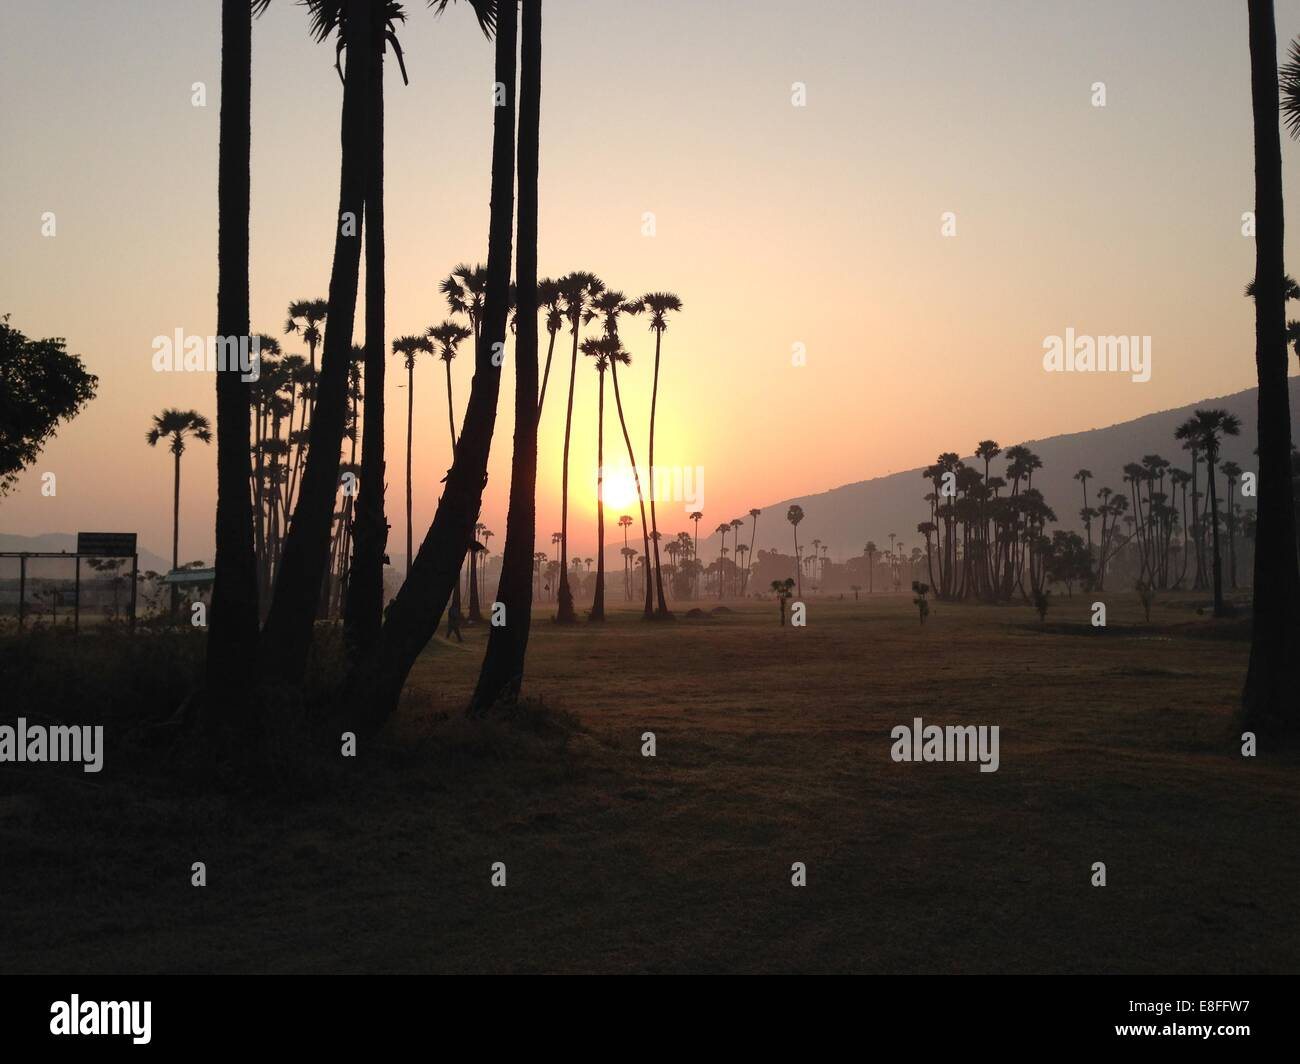 India, Andhra Pradesh, Vishakhapatnam, Vishakapatnam Bypass, Sunrise over palm trees - Stock Image